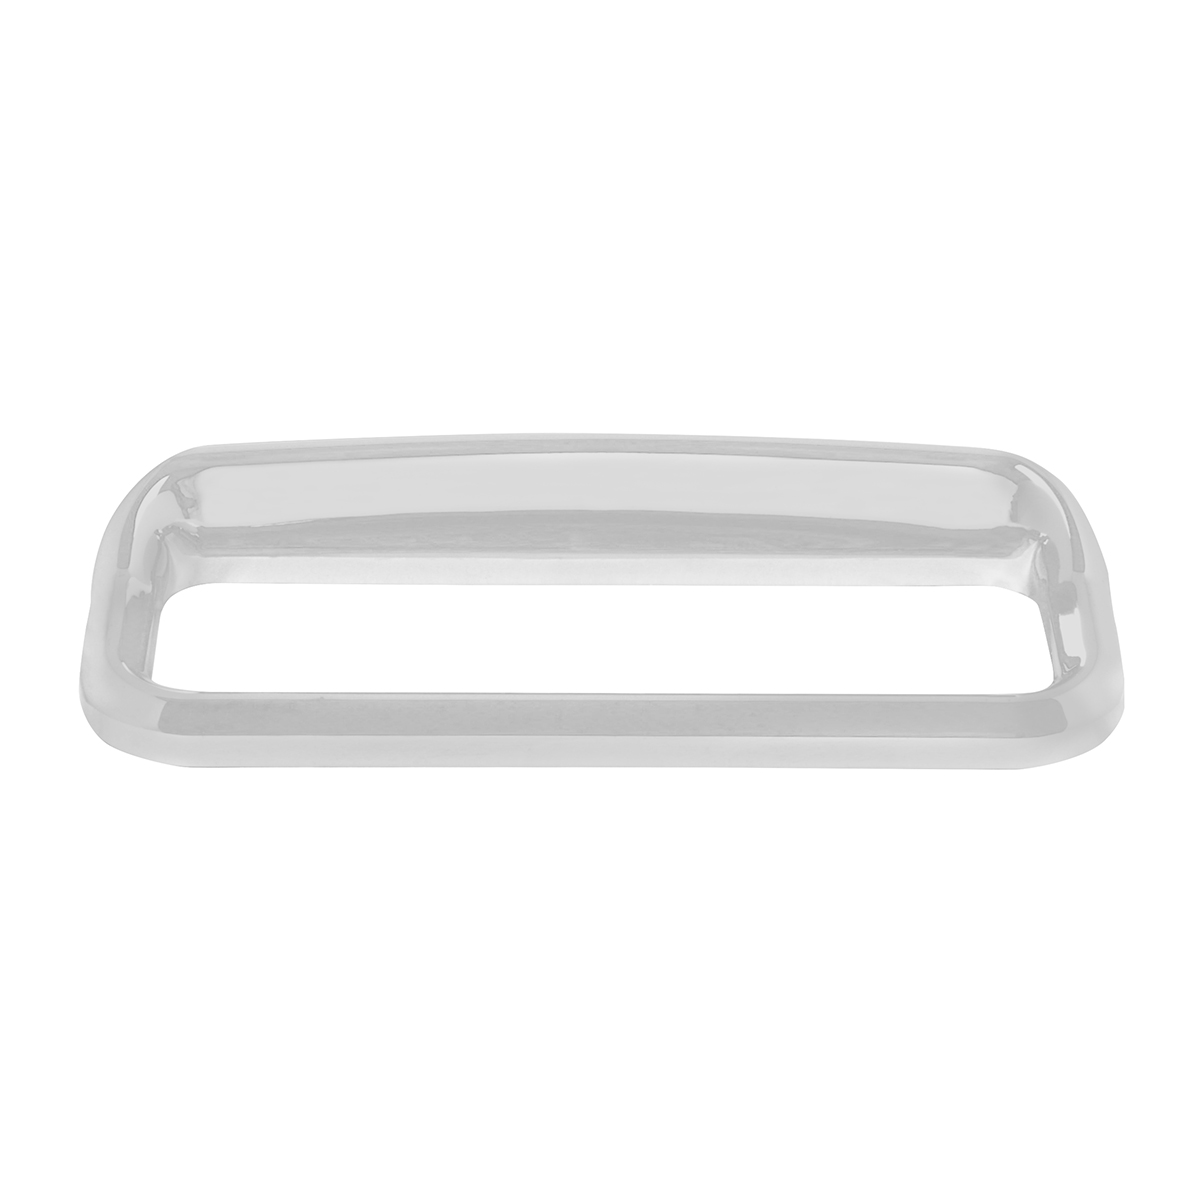 68728 Chrome Plastic Interior Emblem Bezel for Freightliner